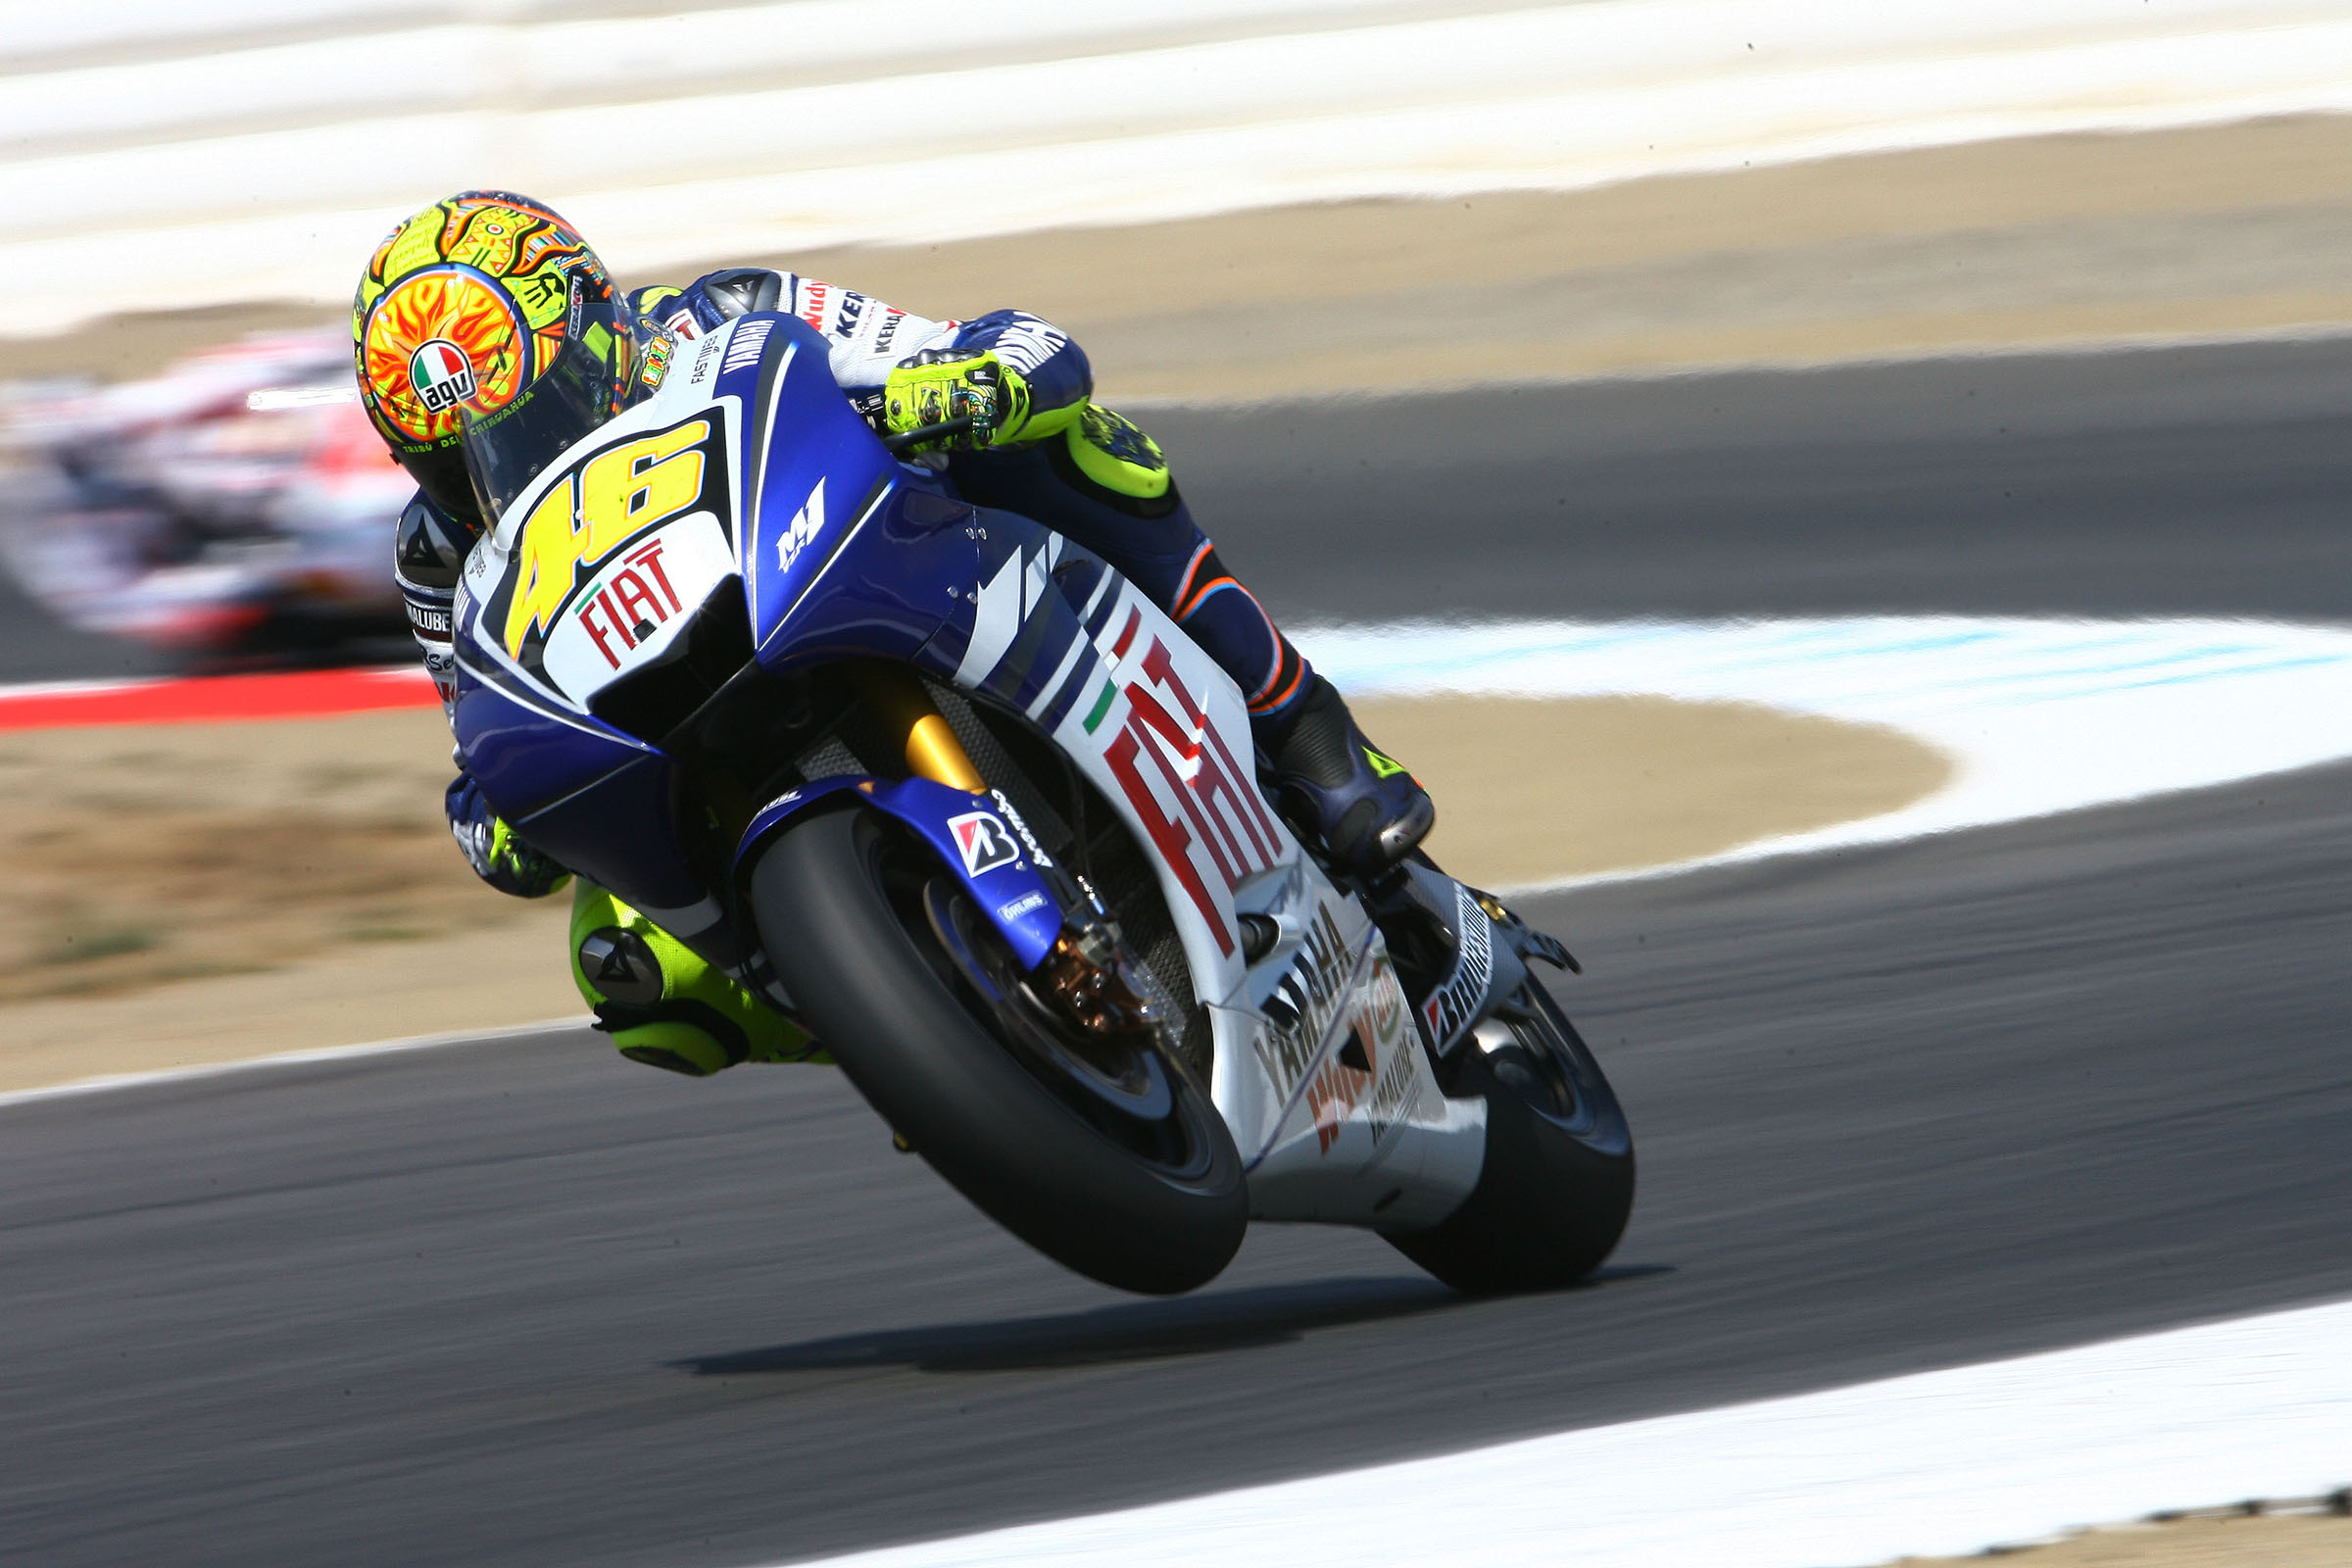 racing motorcycle wallpapers wheelie rossi motogp 2008 sports sportbike yamaha hd nu background backgrounds desktop 2400 1600 chevron wallpaperup right